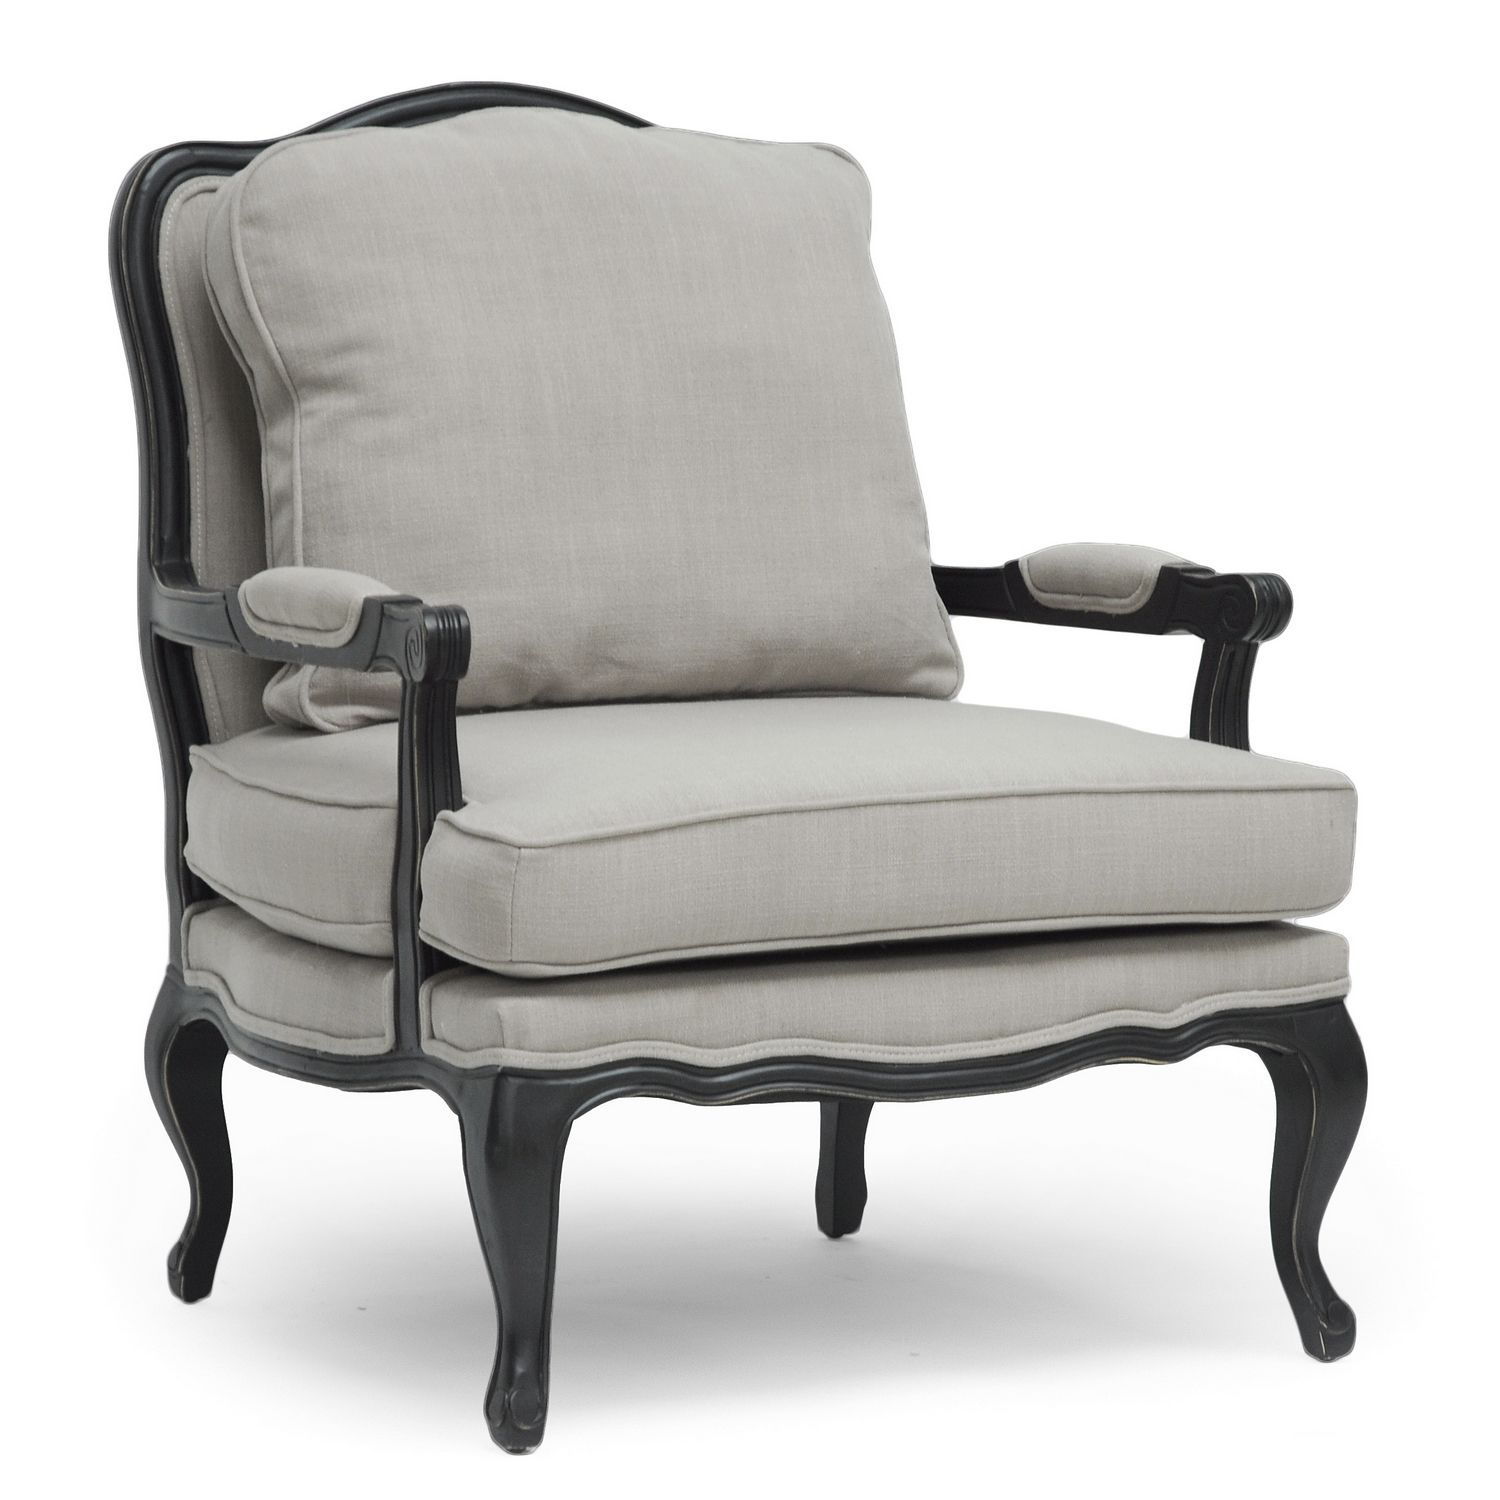 Our Antoinette features scalloped and scrolled wood trim padded